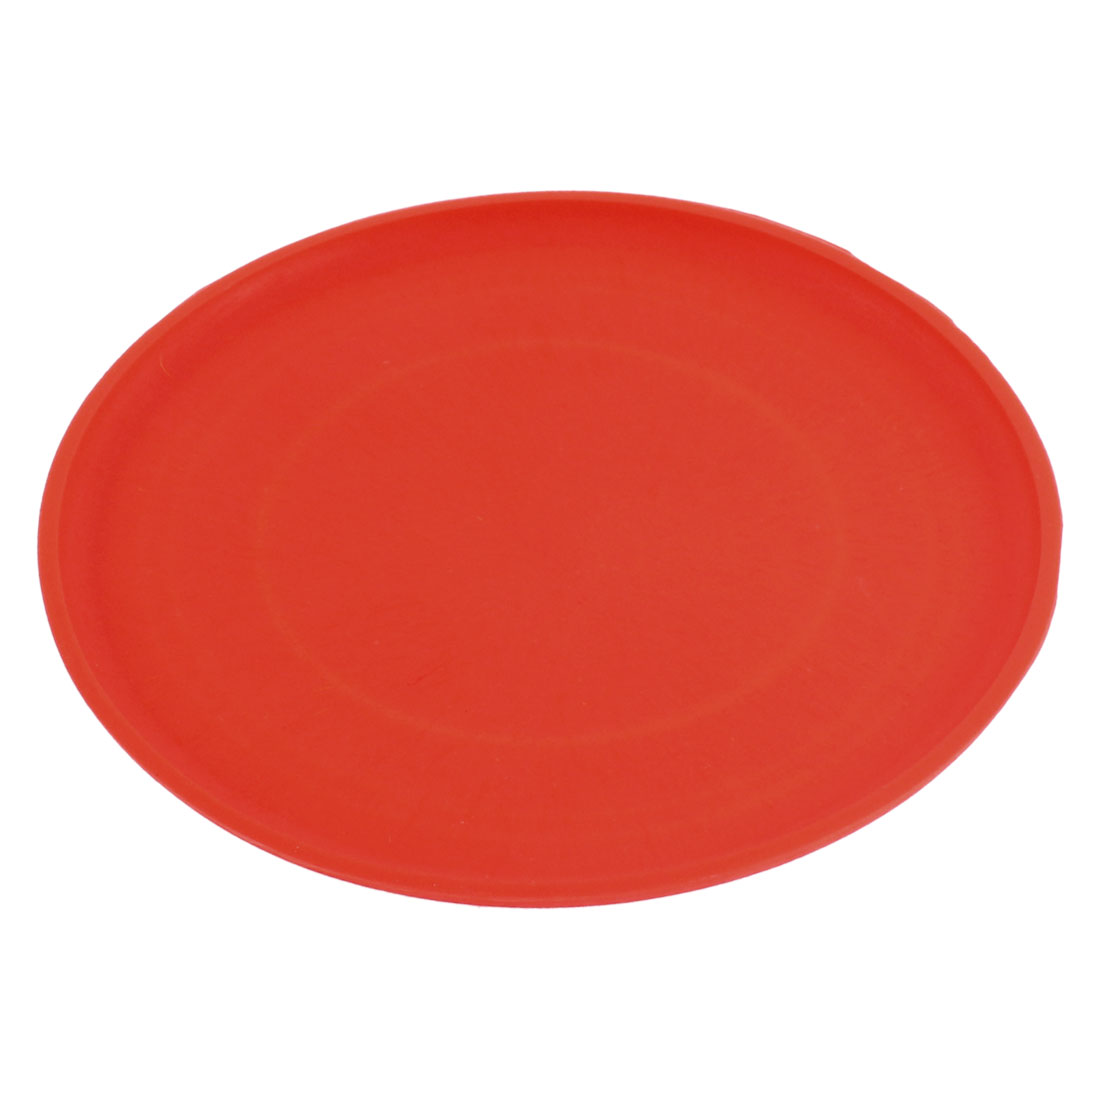 Pet Dog Puppy Training Flying Saucer Frisbee Toy Dish Plate Red